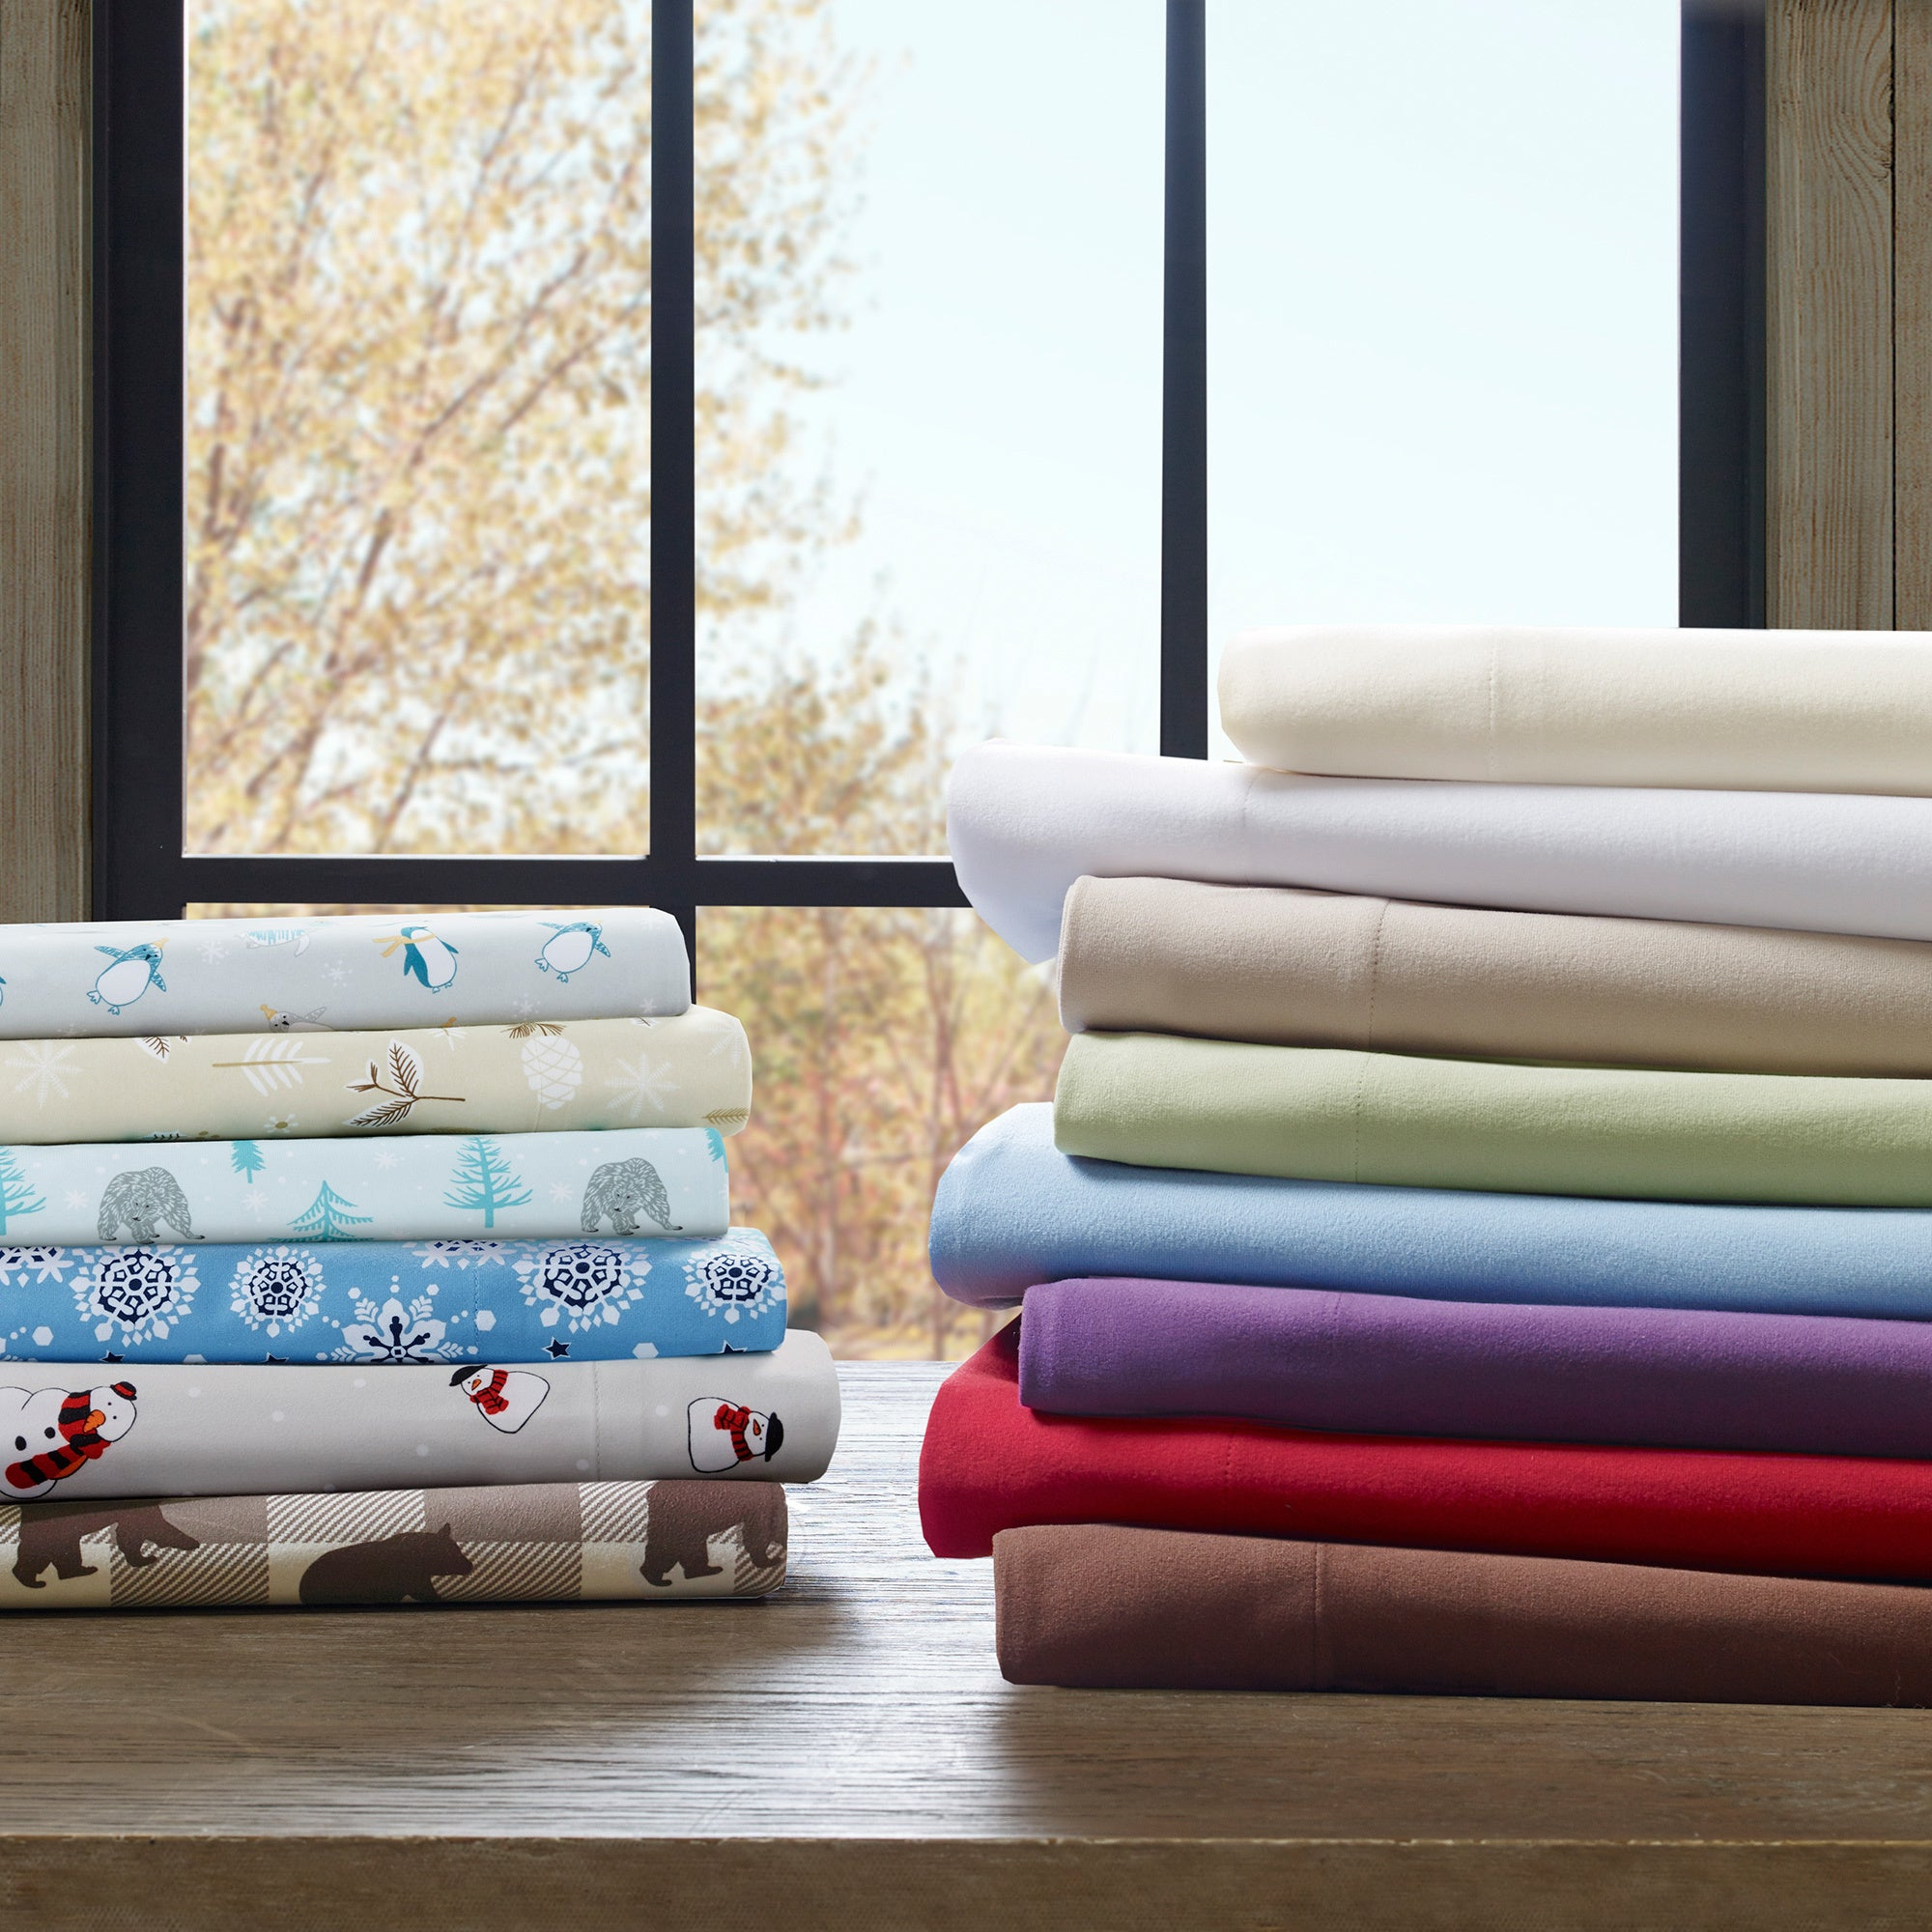 Laurel Creek Beryl Softspun All-season Sheet Set